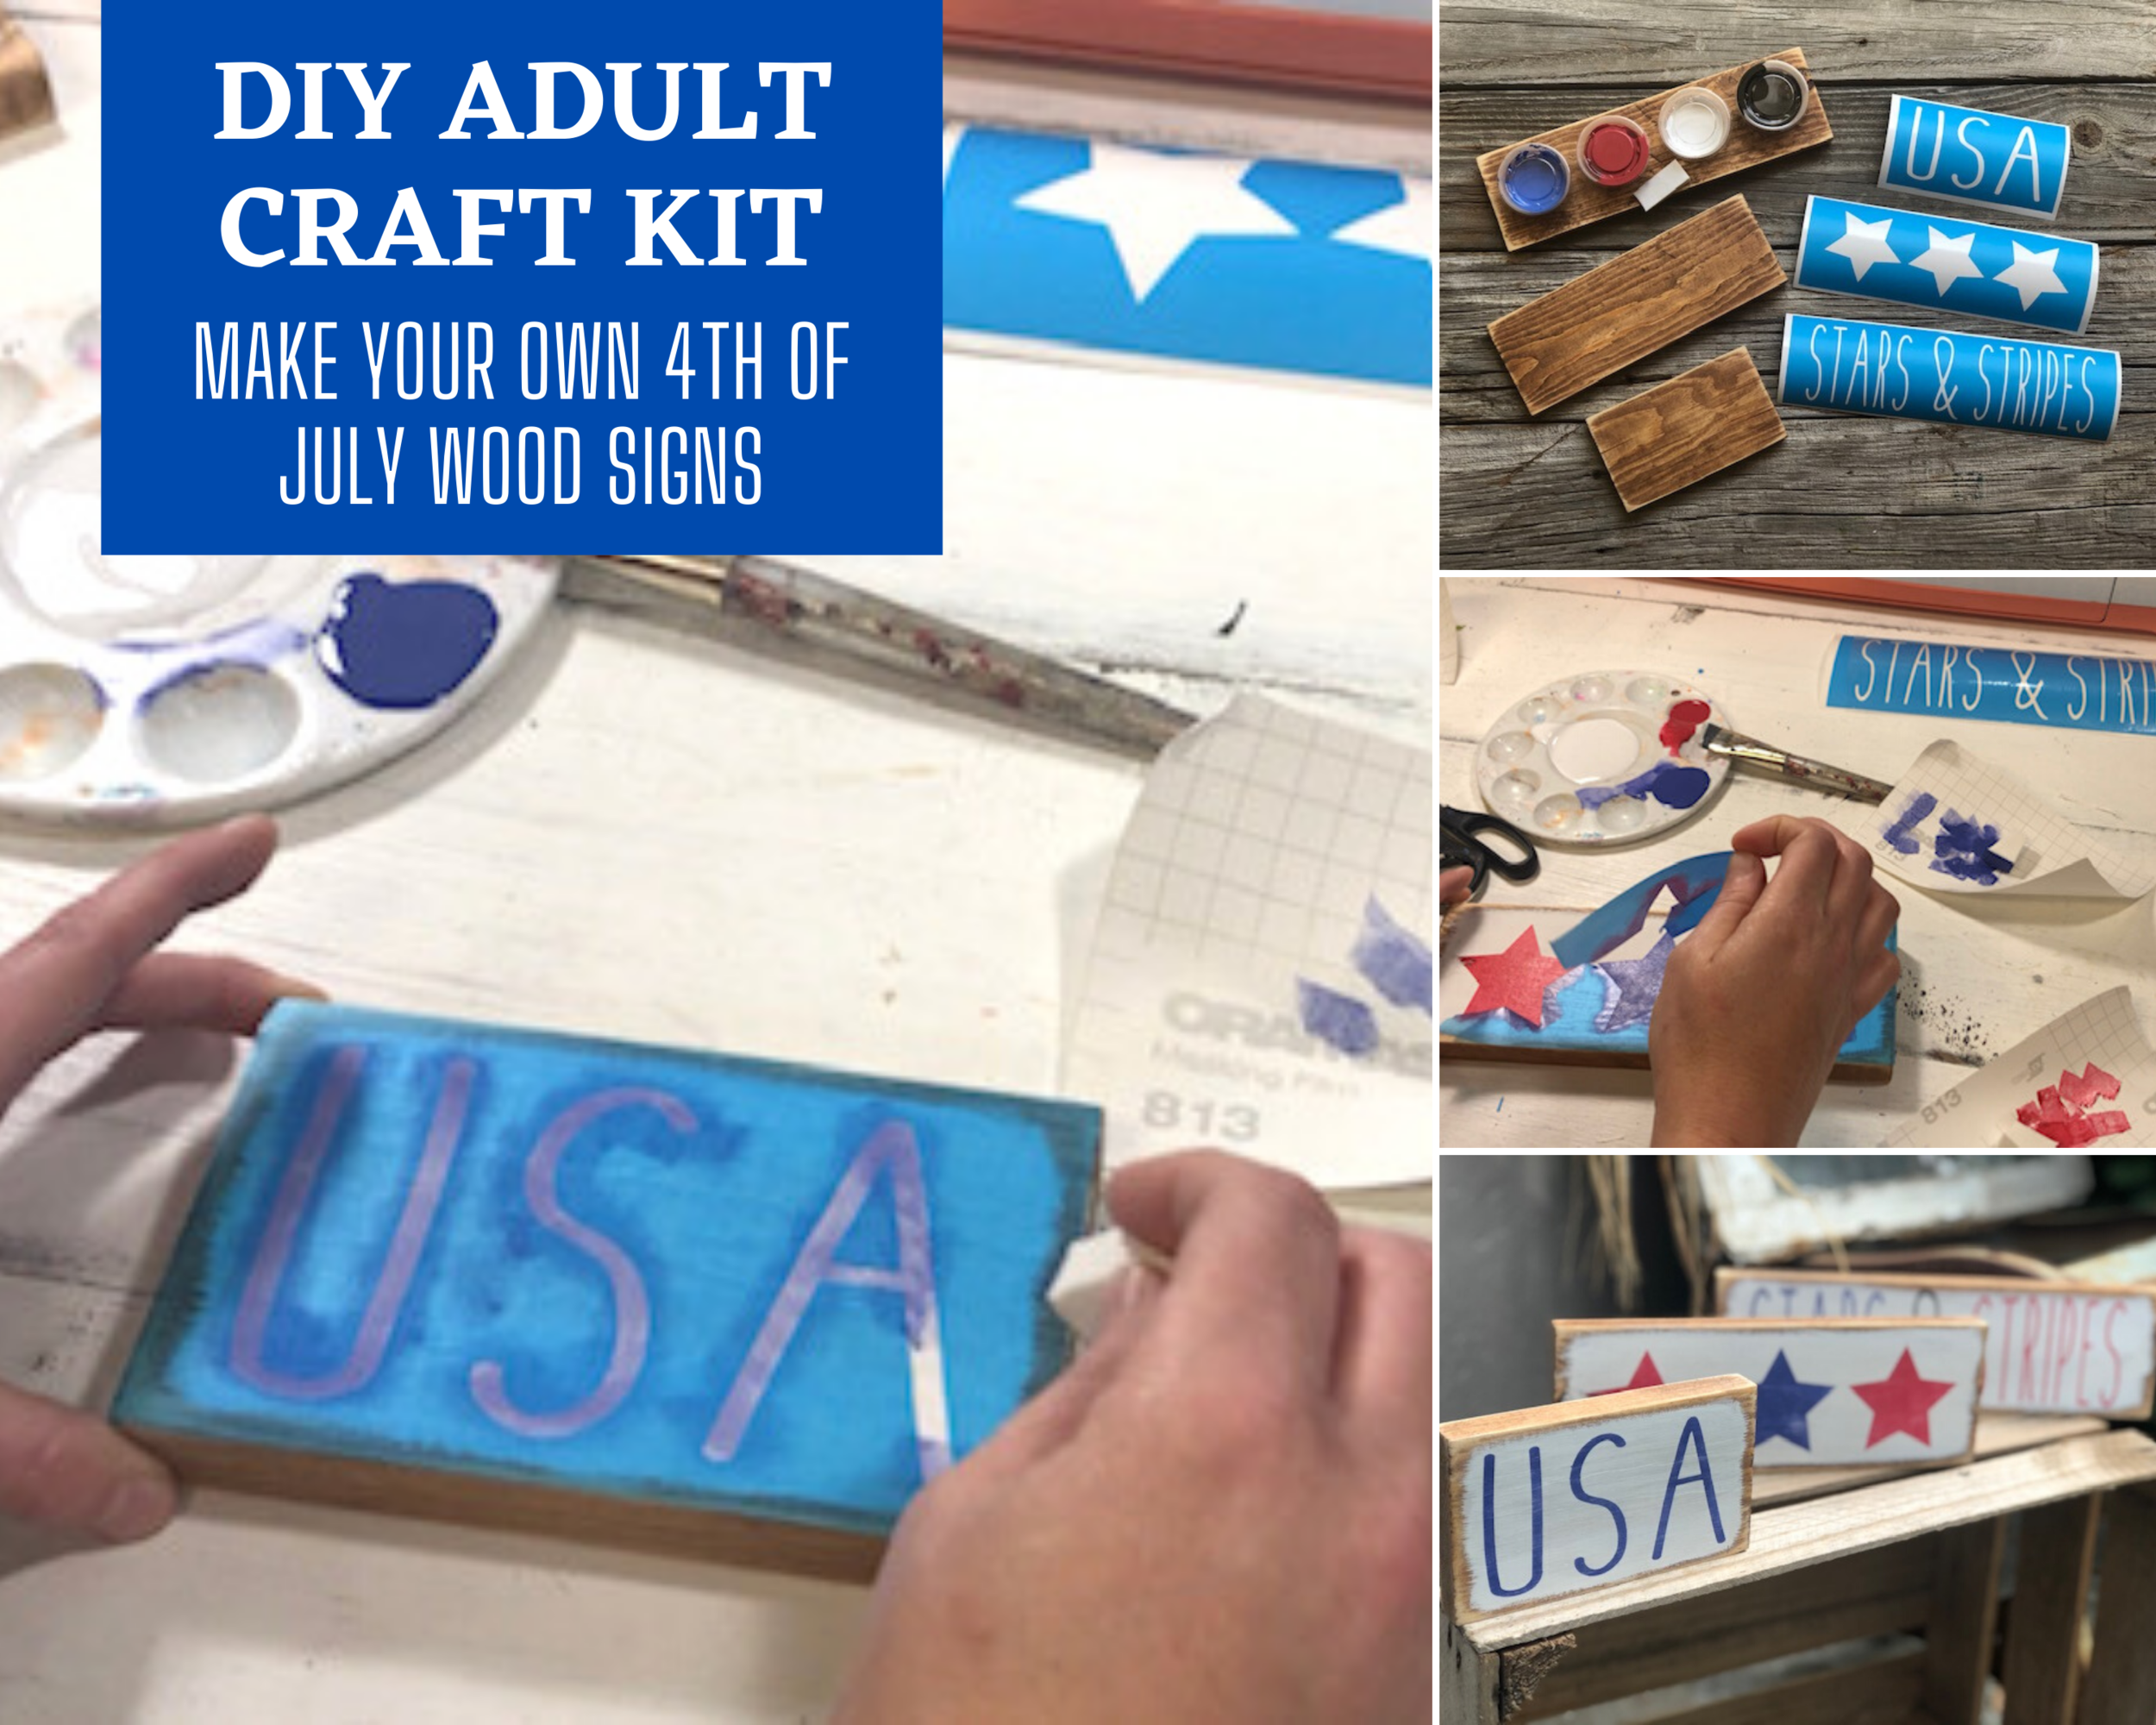 DIY craft kit for adults for the 4th of July. Make your own mini wood tiered tray signs with this craft kit. How to paint mini rustic wood signs. DIY patriotic crafts for adults